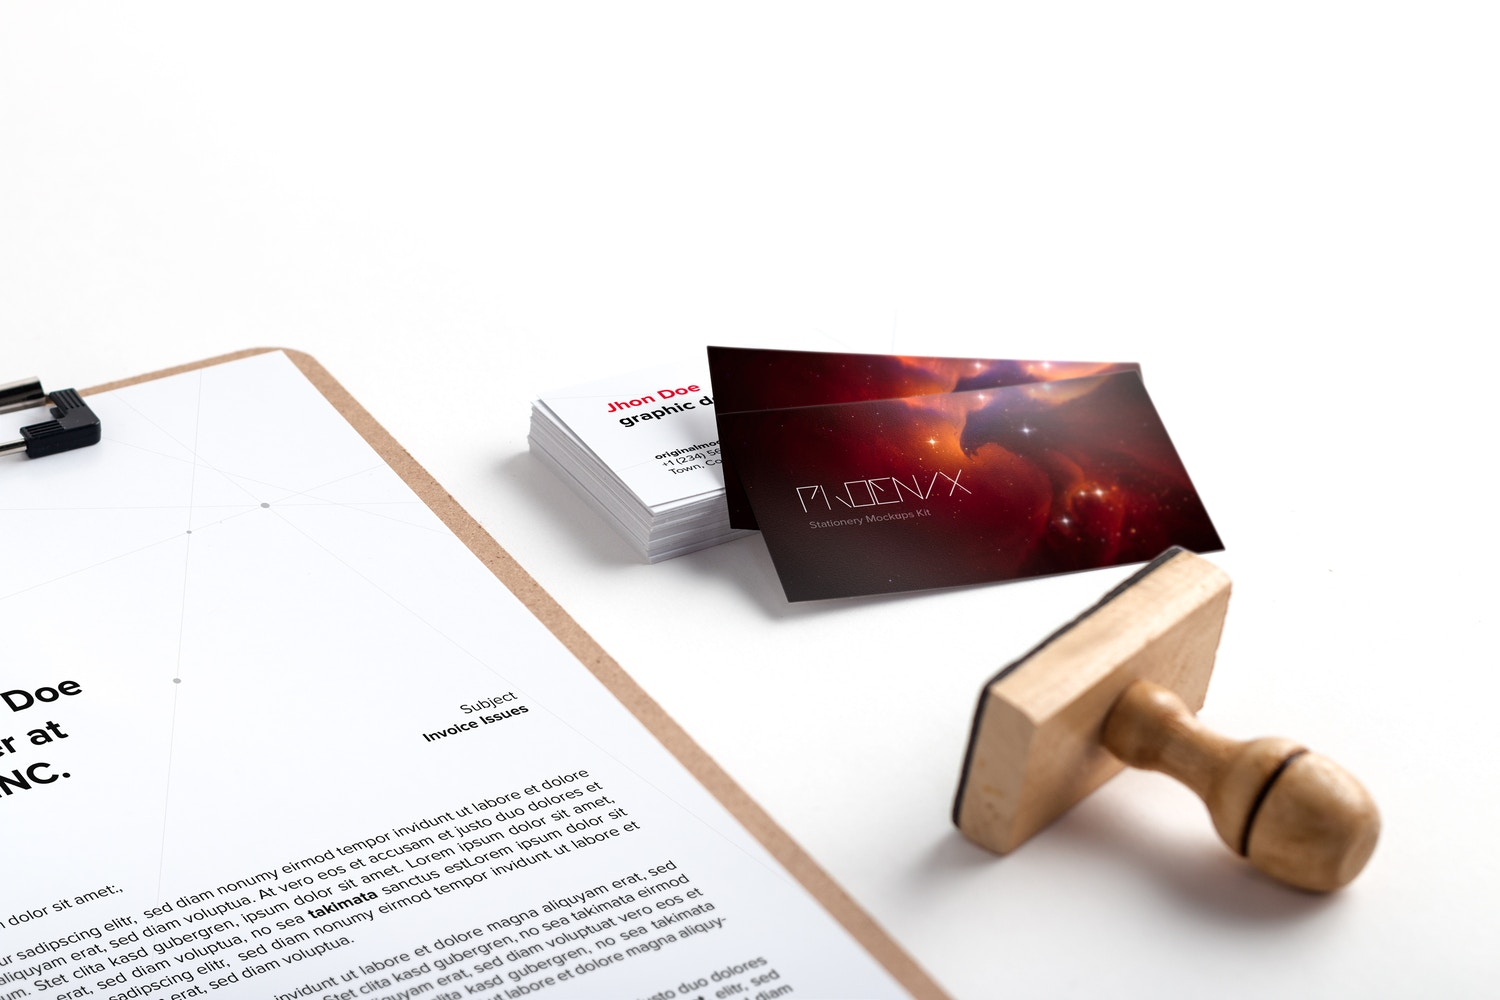 A4 Clipboard and Business Cards Mockup 02 by Original Mockups on Original Mockups